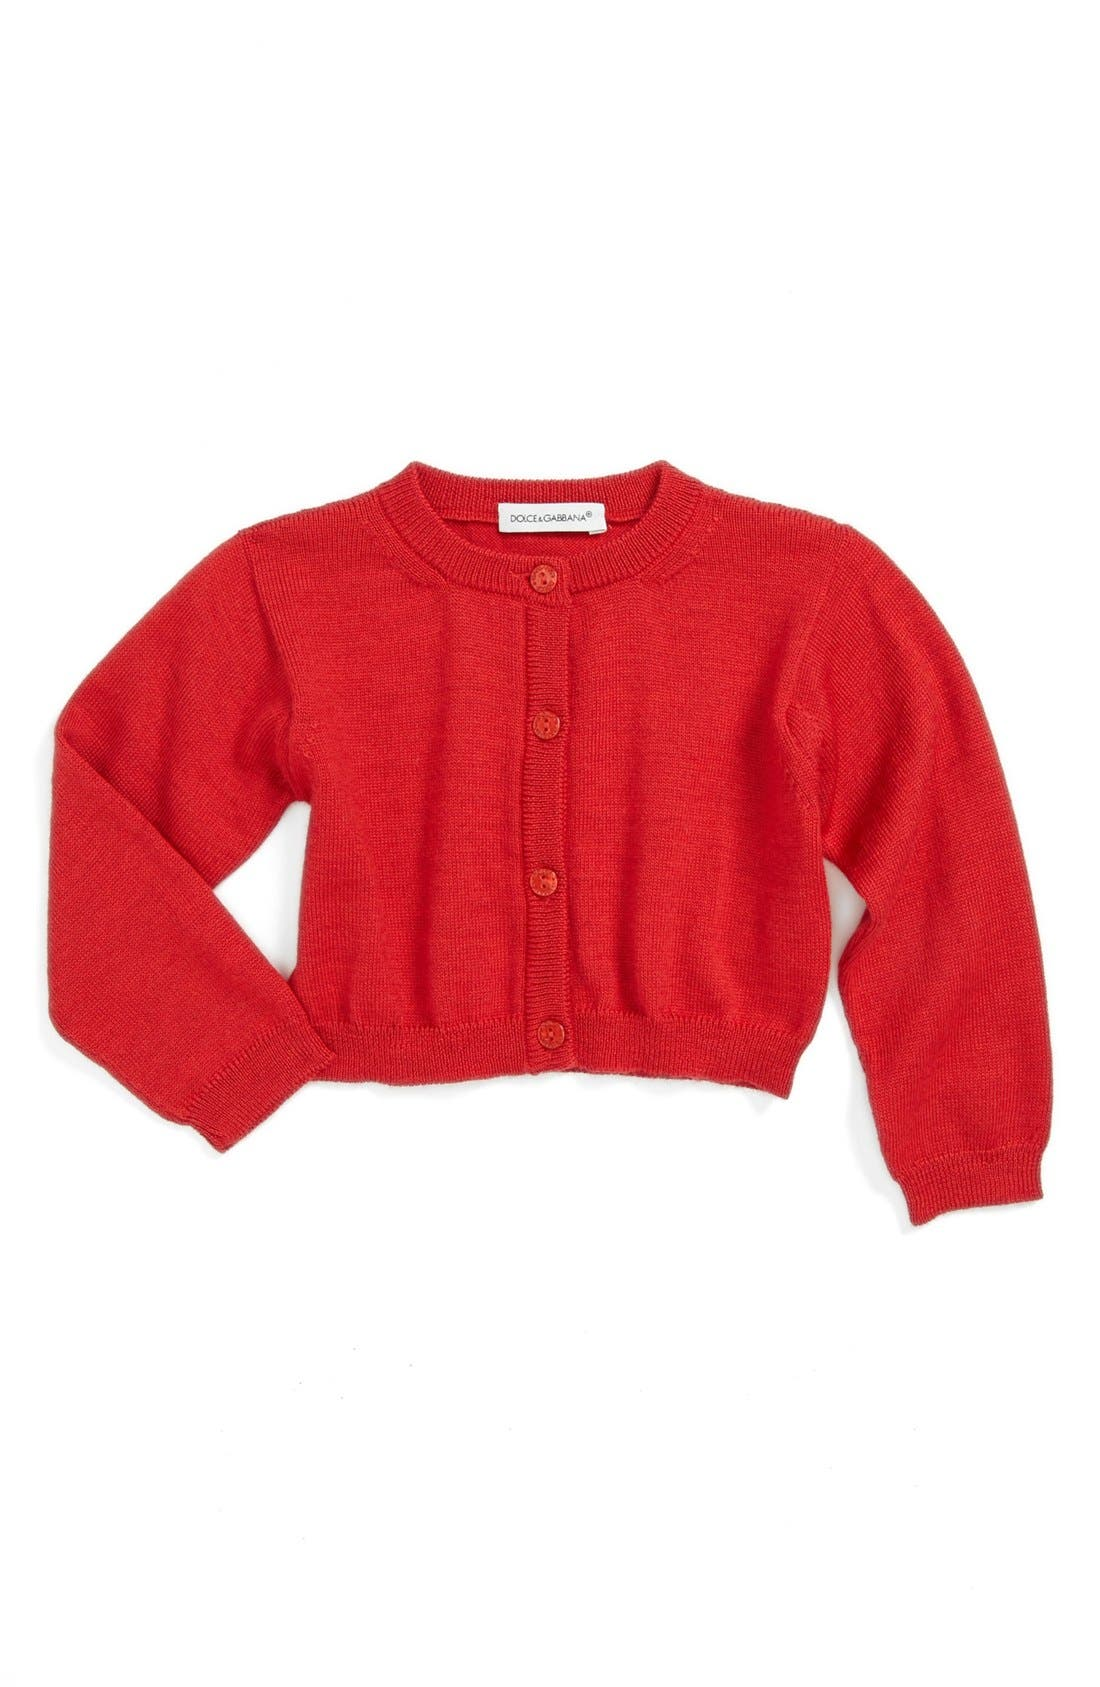 Main Image - Dolce&Gabanna Wool Cardigan (Baby Girls)